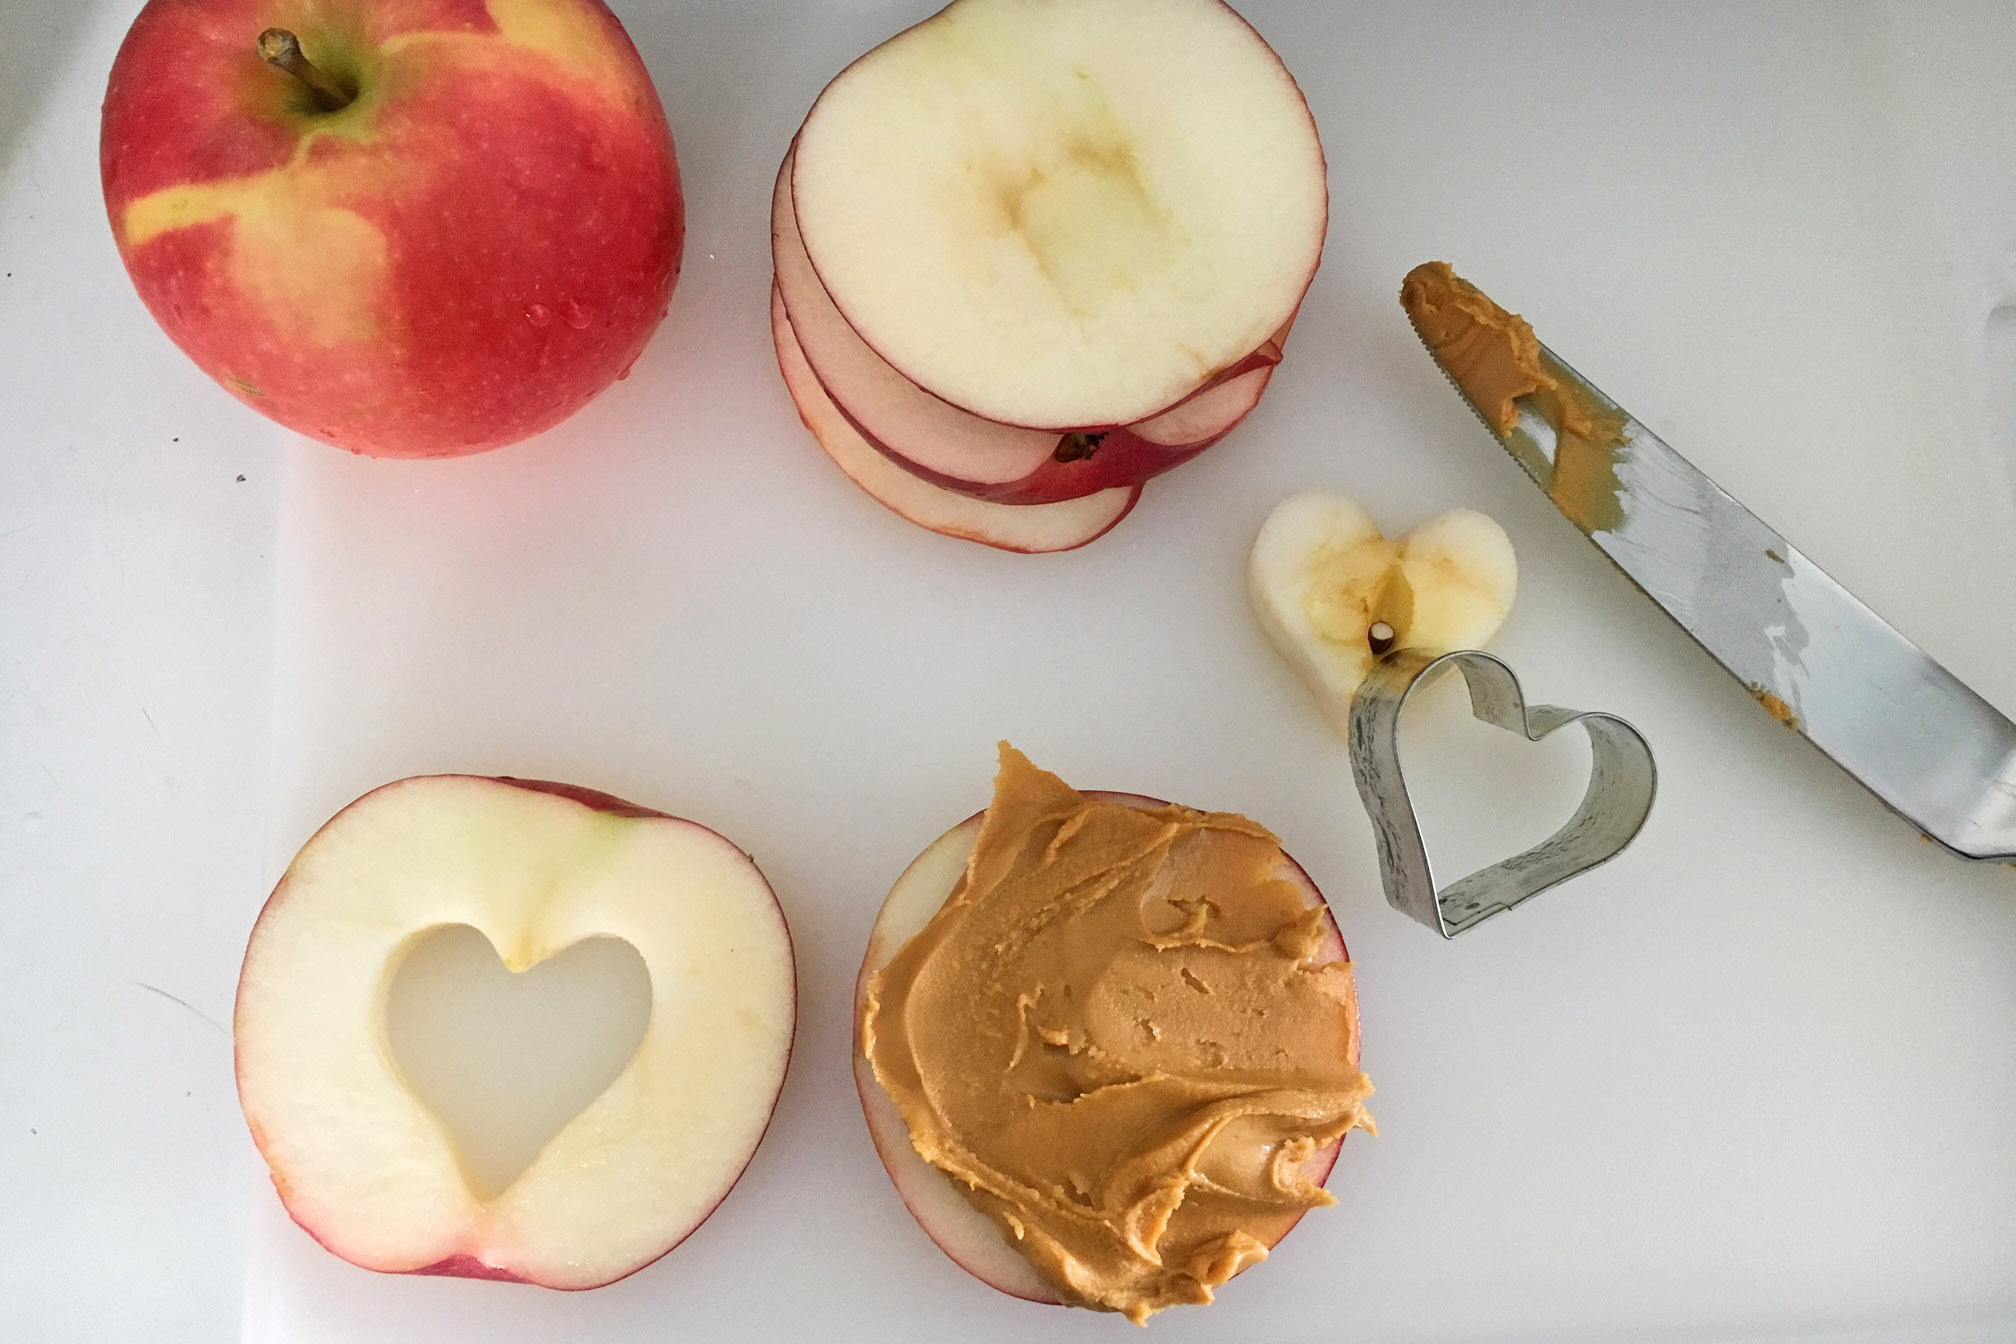 Making An Apple Peanut Butter Sandwich